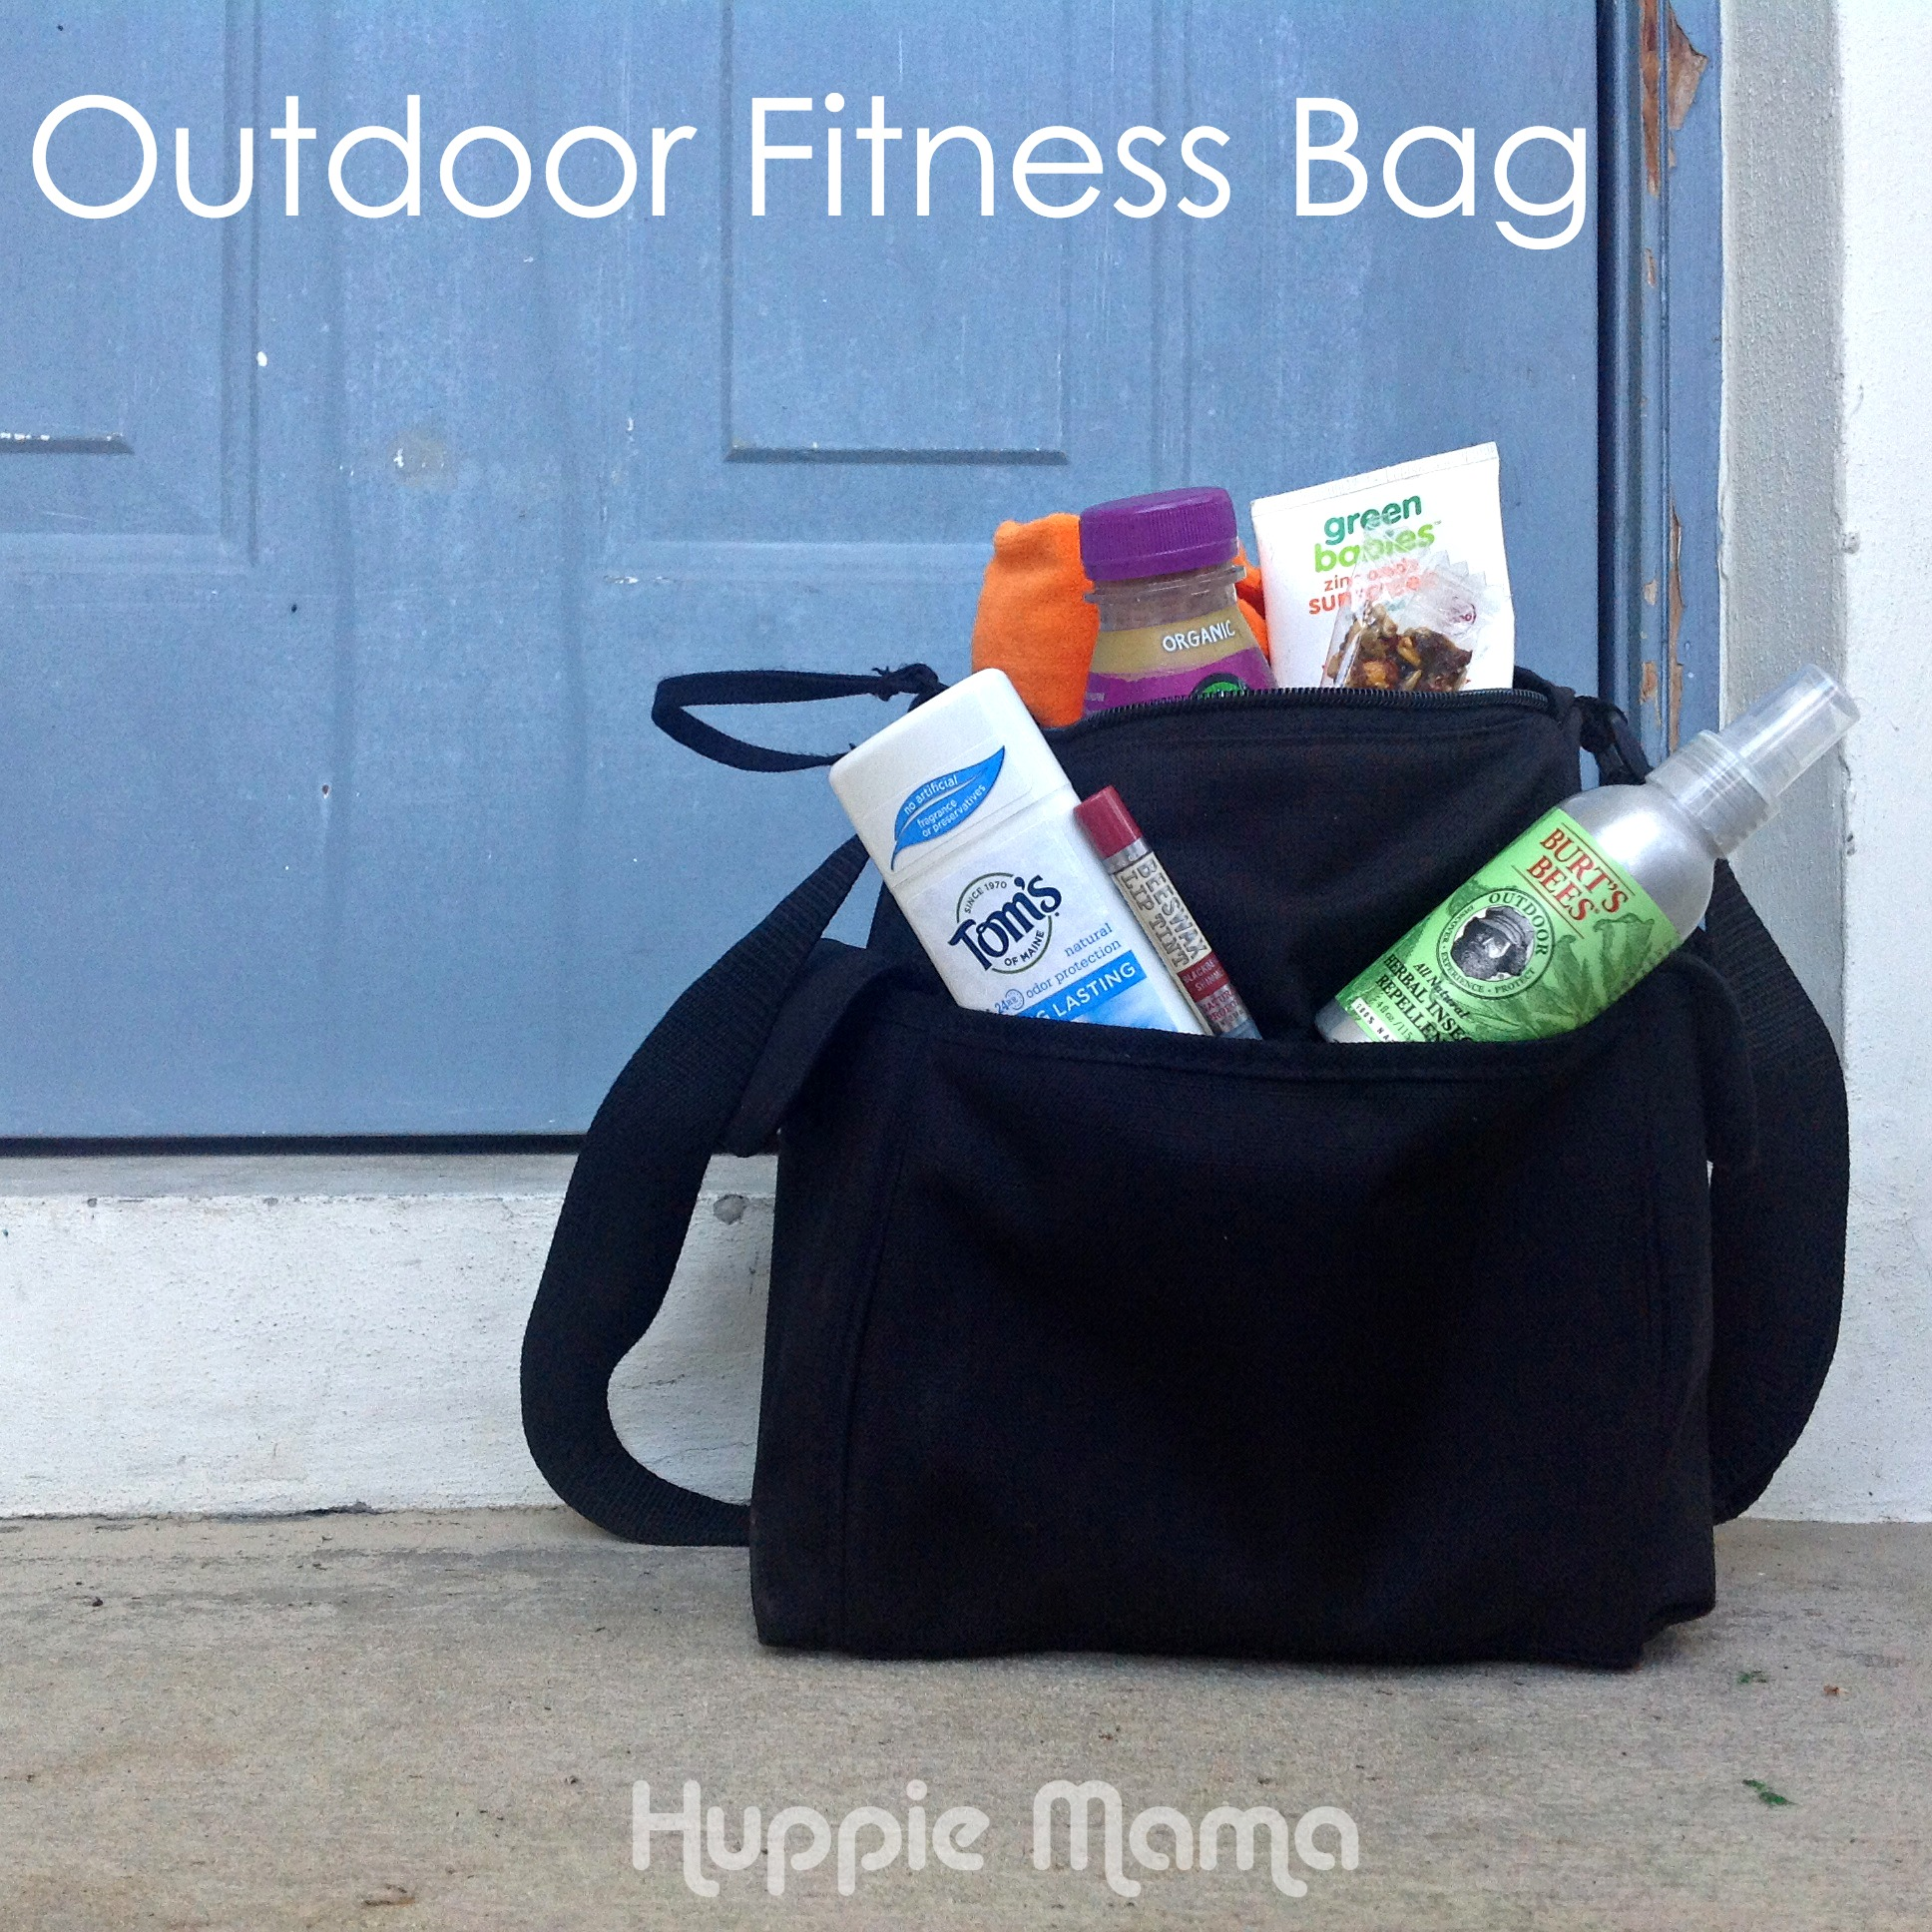 Natural Ingredients for an Active Lifestyle